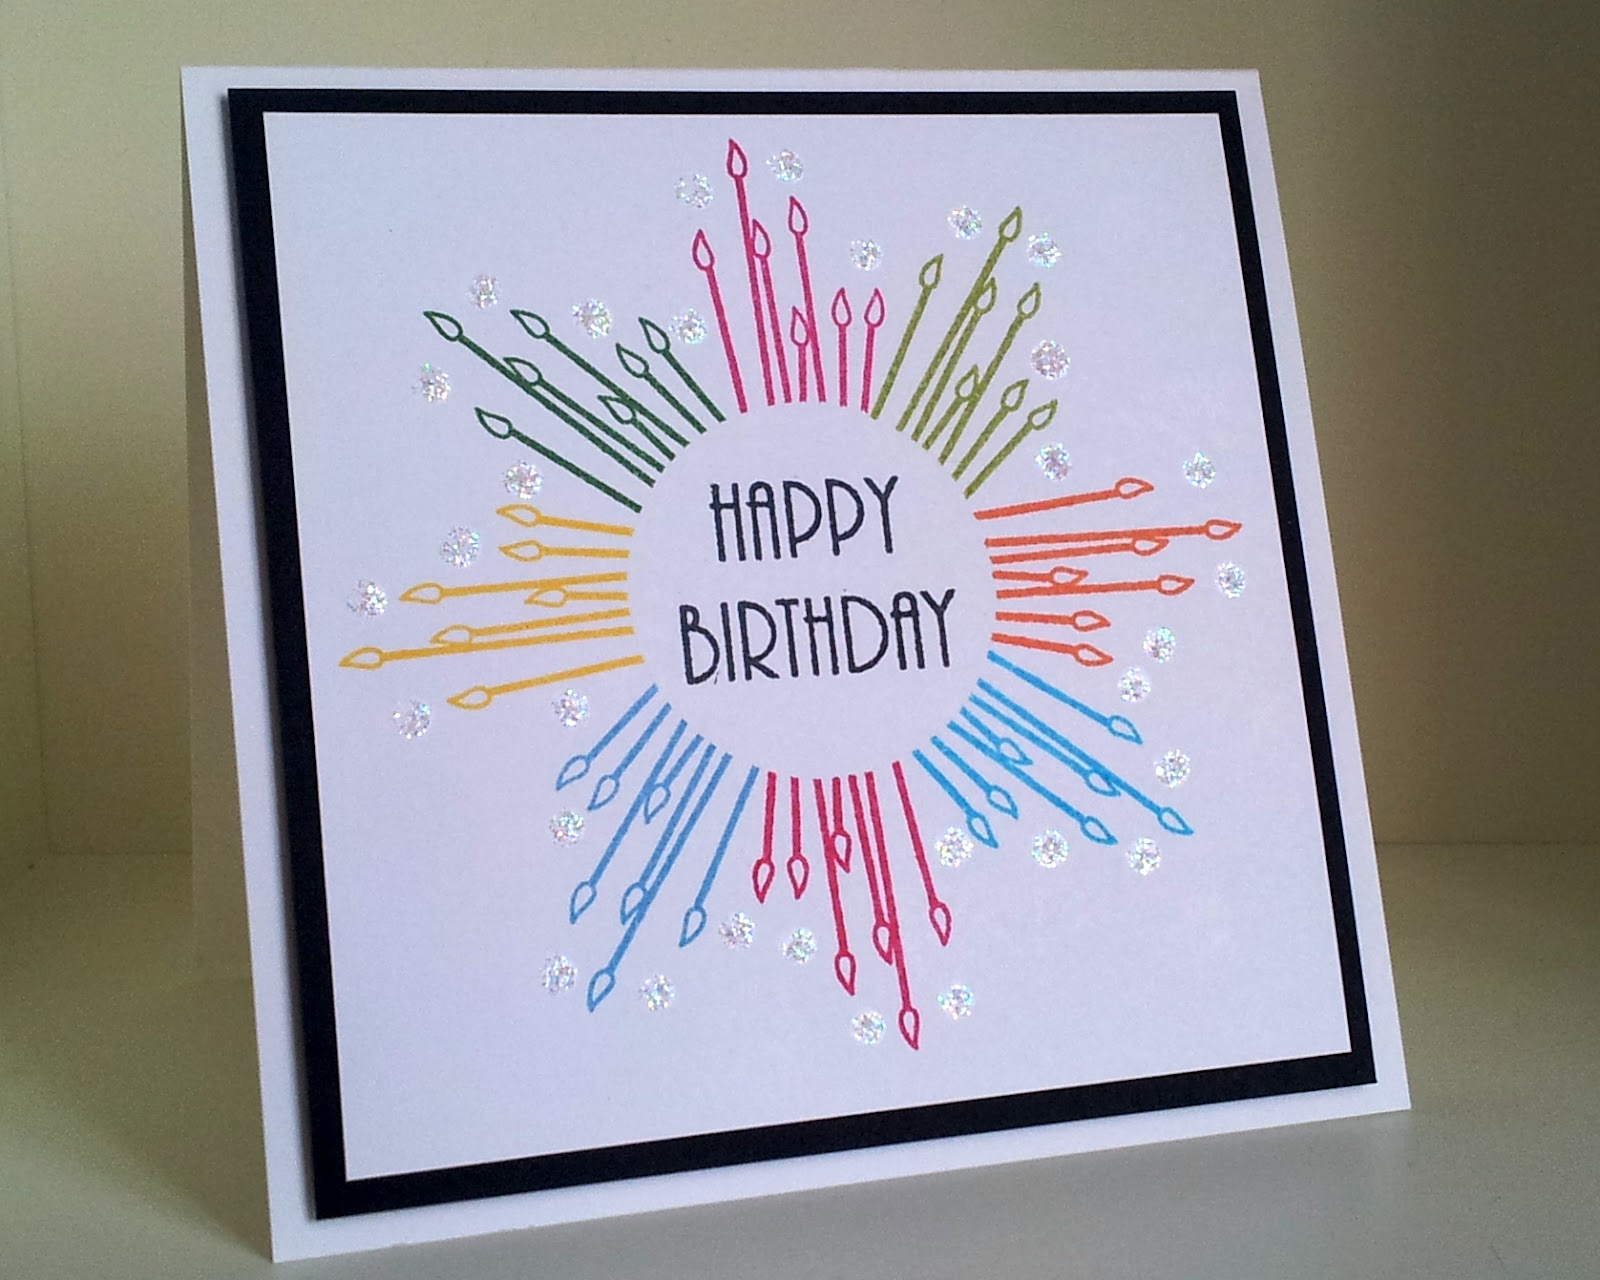 happy birthday card design pictures ; Cool-Designs-For-A-Birthday-Card-and-get-ideas-how-to-make-easy-on-the-eye-birthday-Card-appearance-1